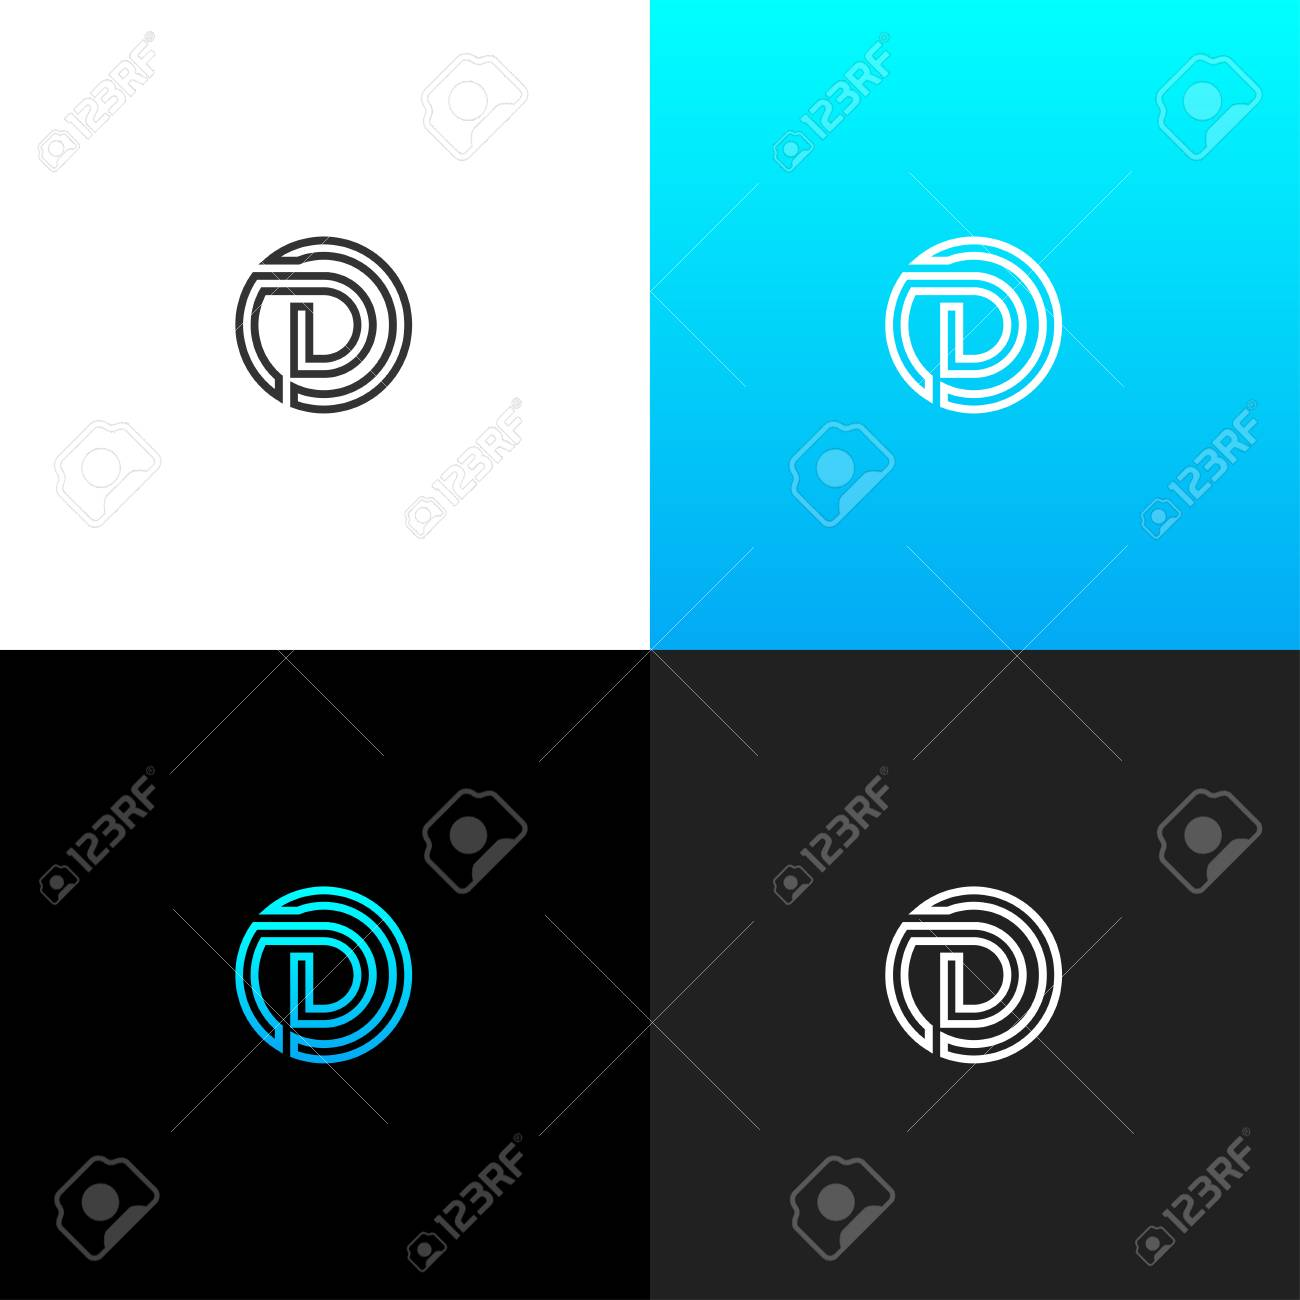 3b2fd0b2e1 Logo D in line circle. Linear logo of the letter d for companies..